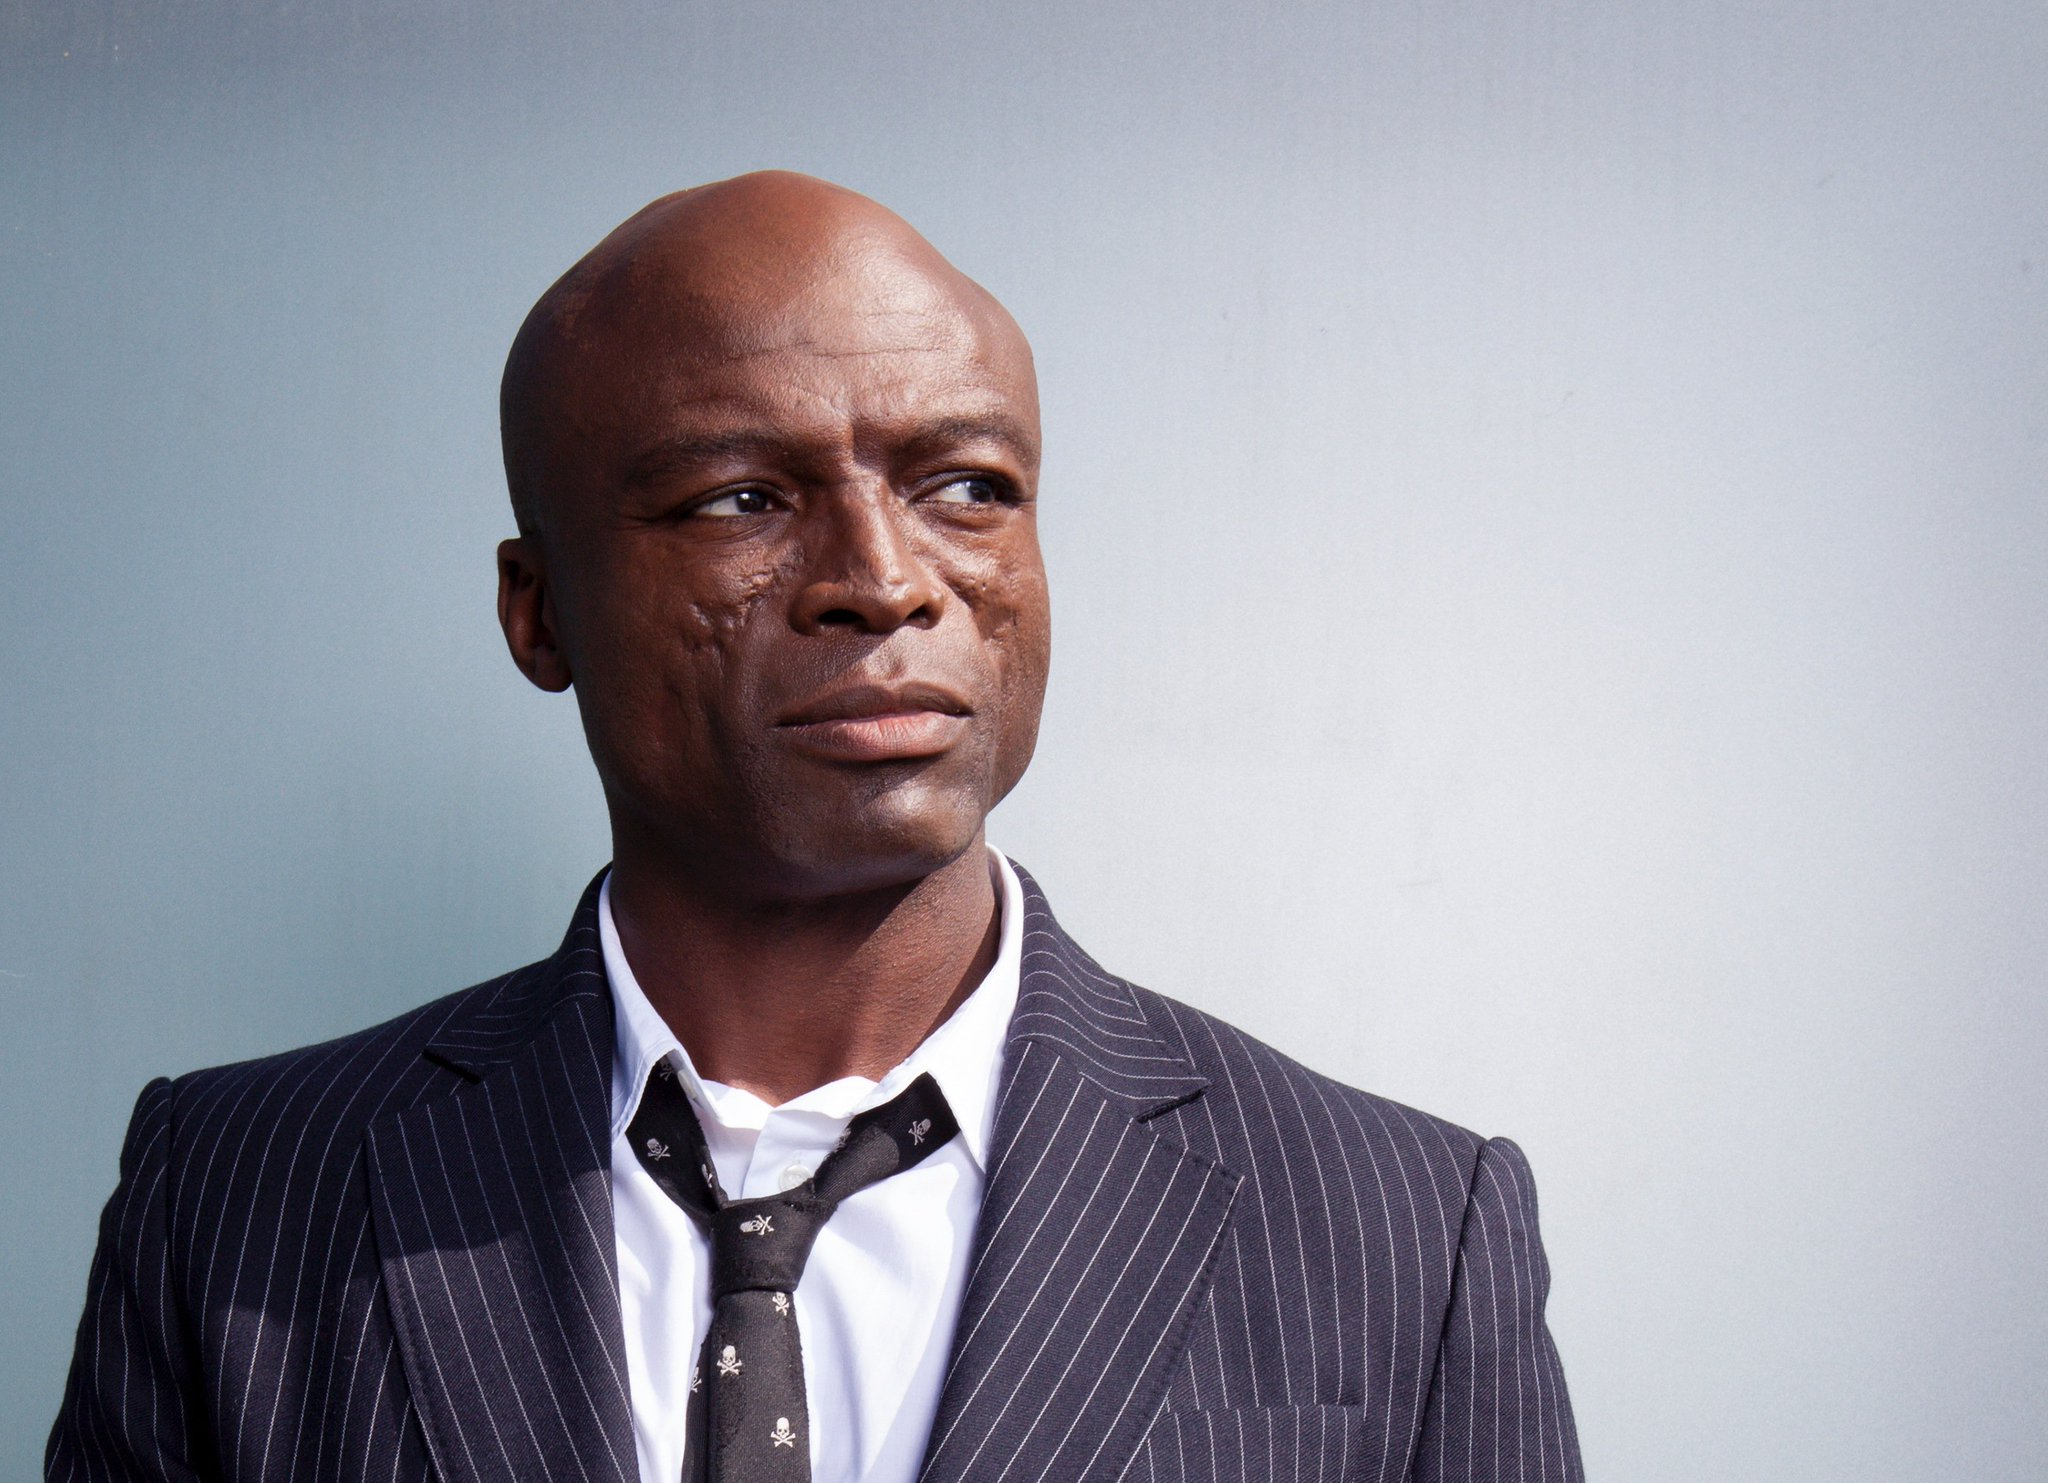 .@Seal apologizes for criticizing Oprah, tells Stacey Dash 'you live in the Sunken Place' https://t.co/1z0hYvW14F https://t.co/c3UkqcPc2c